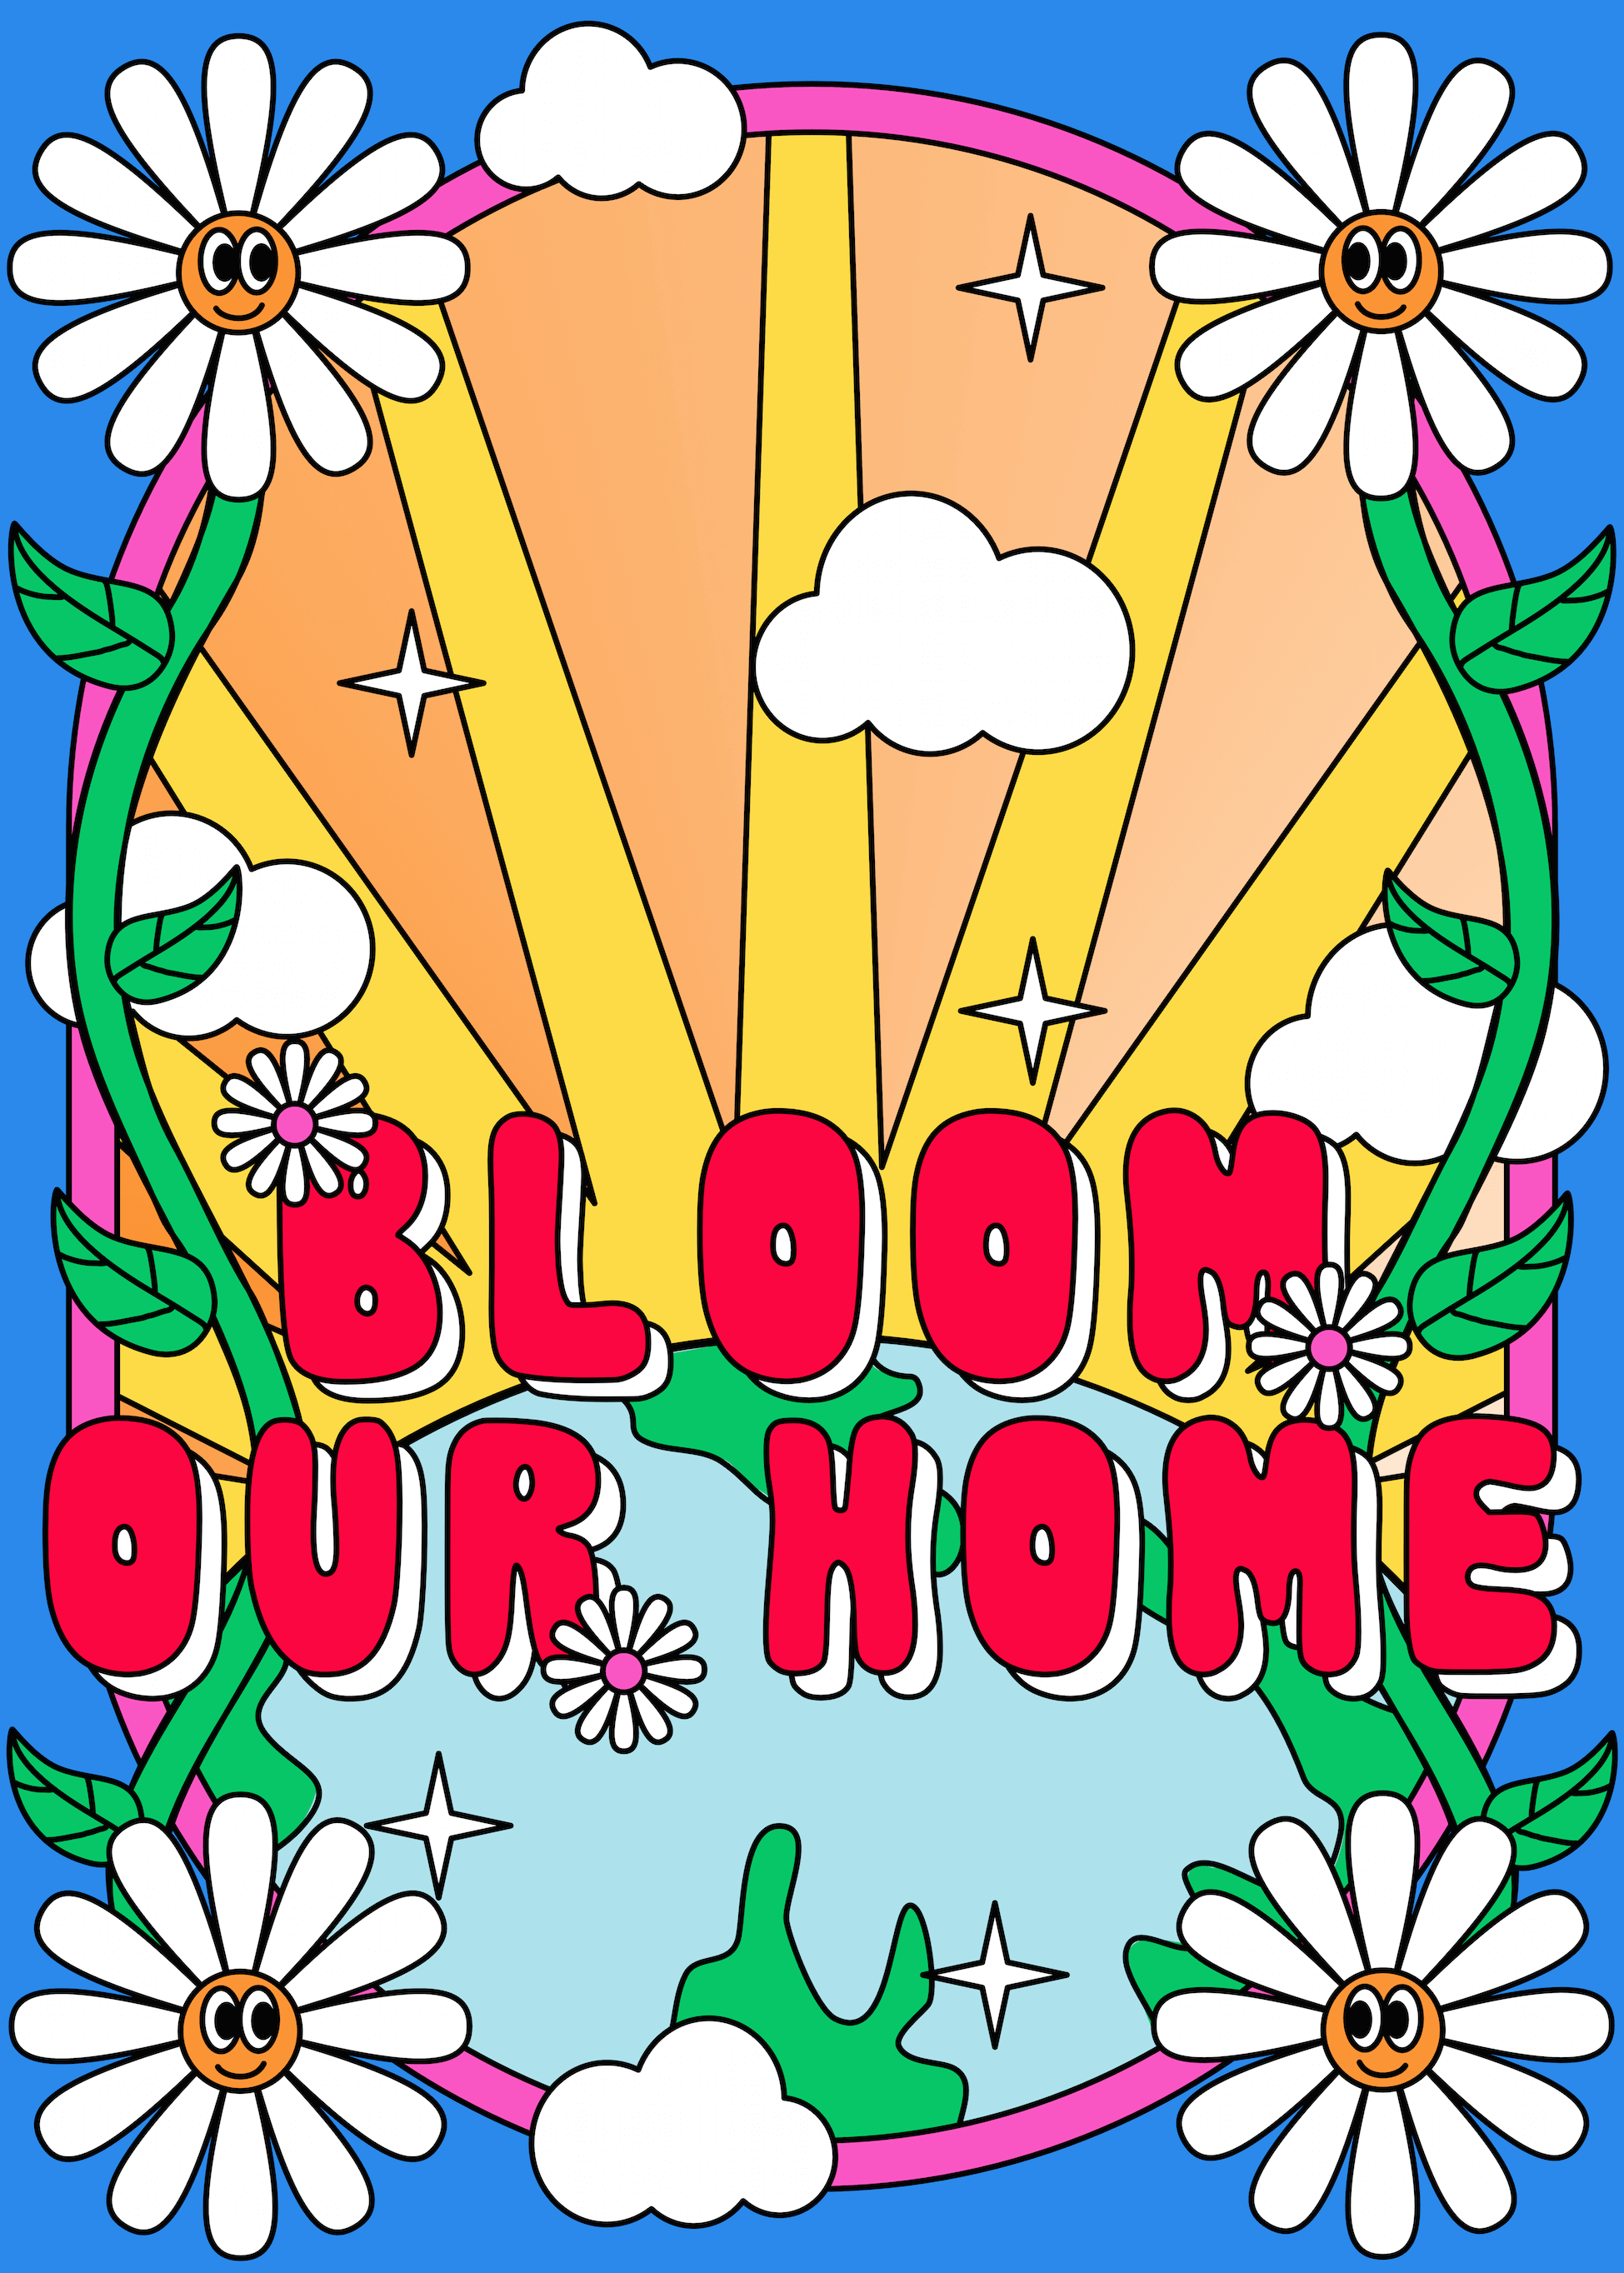 Bloom Our Home main image